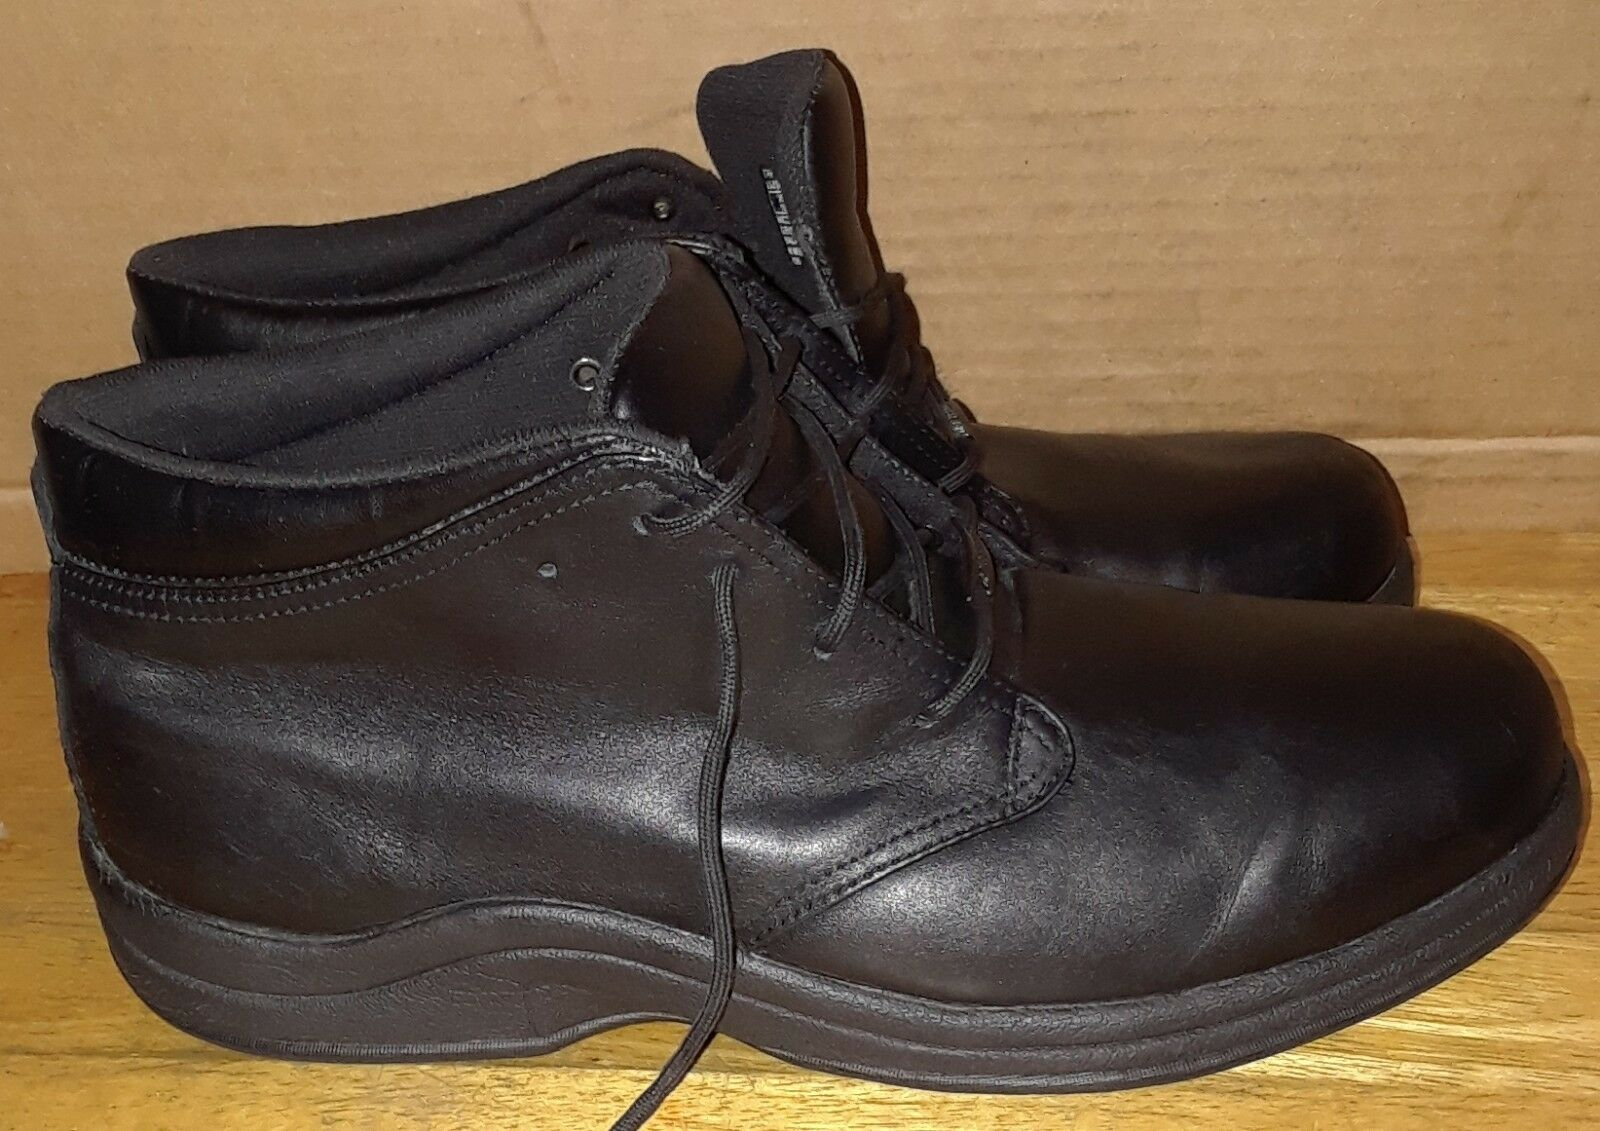 PW Minor Tribeca Black Leather Waterproof Ankle Diabetic Boot Boot Boot 10.5W 1c6cb6